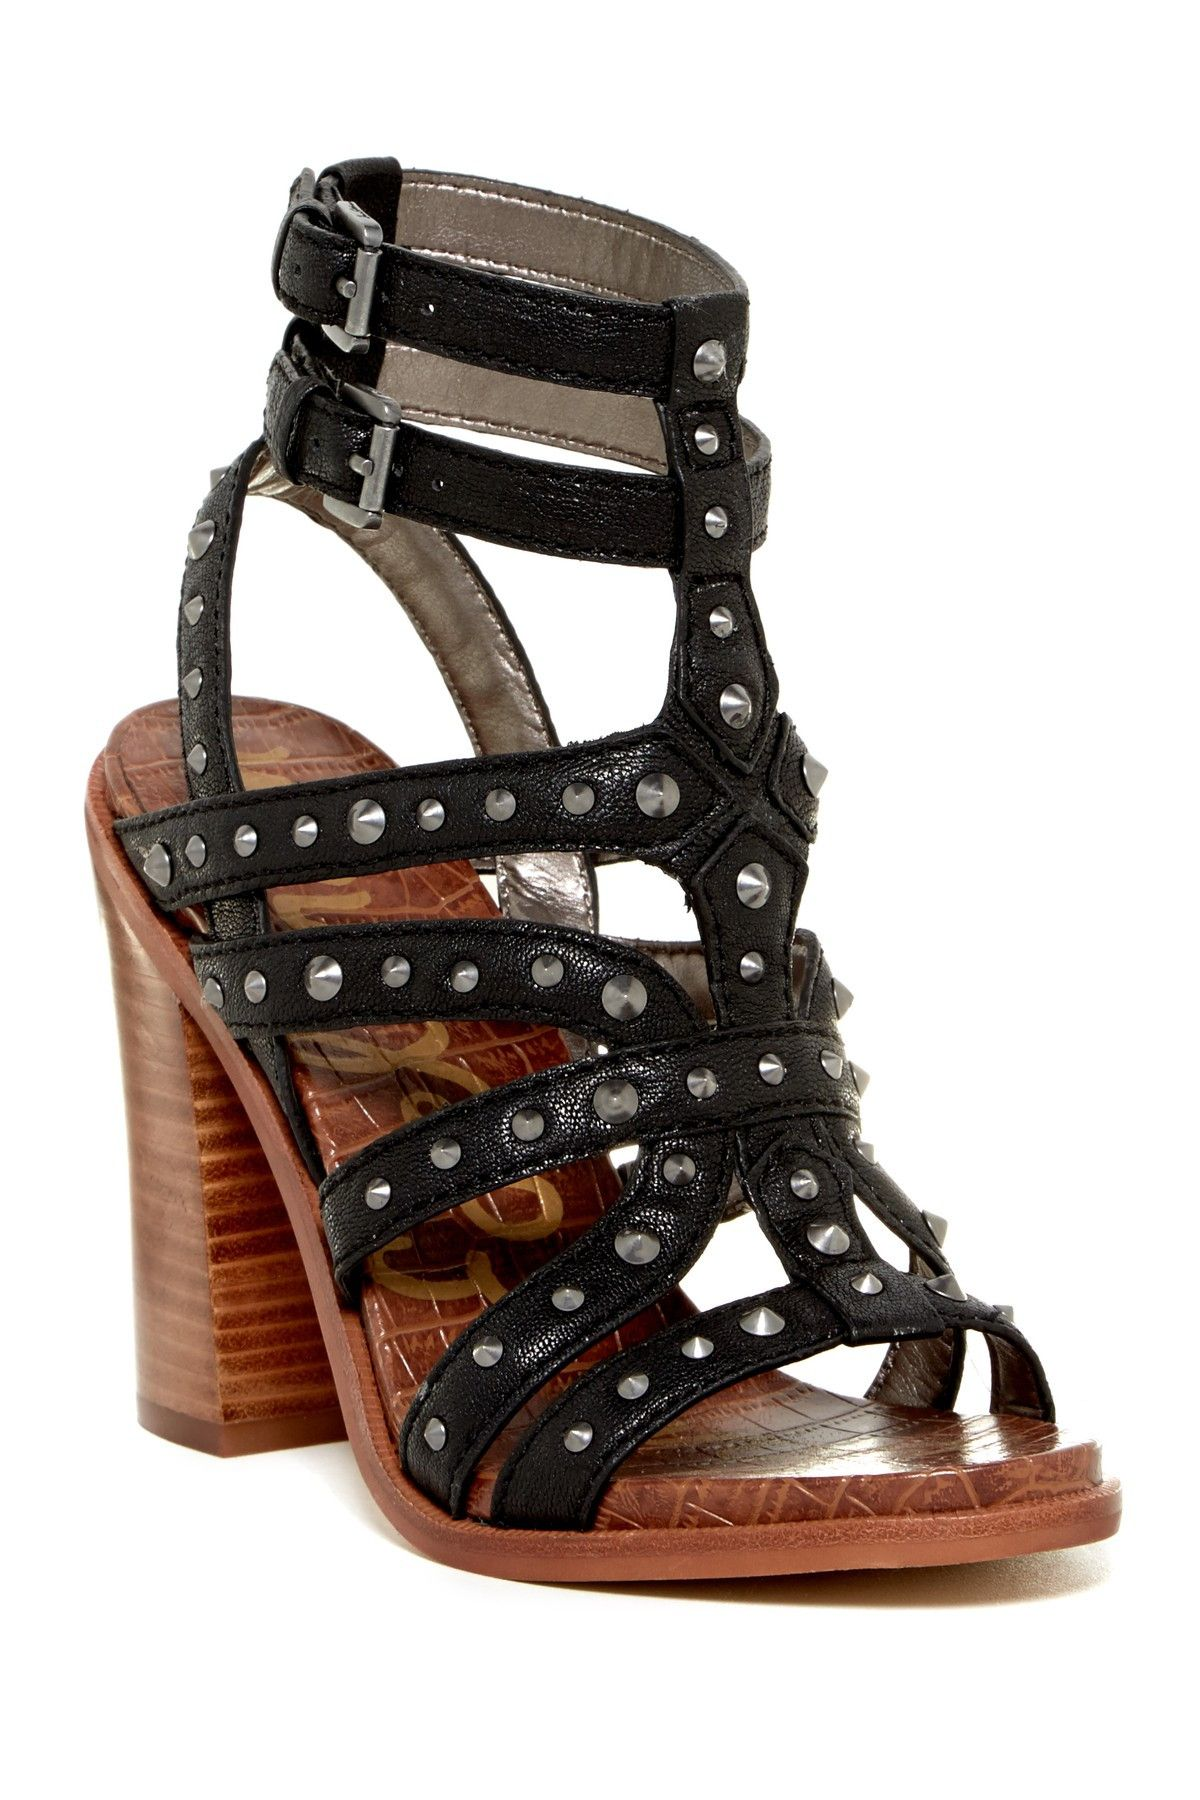 Transition your wardrobe into fall with these edgy studded sandals!